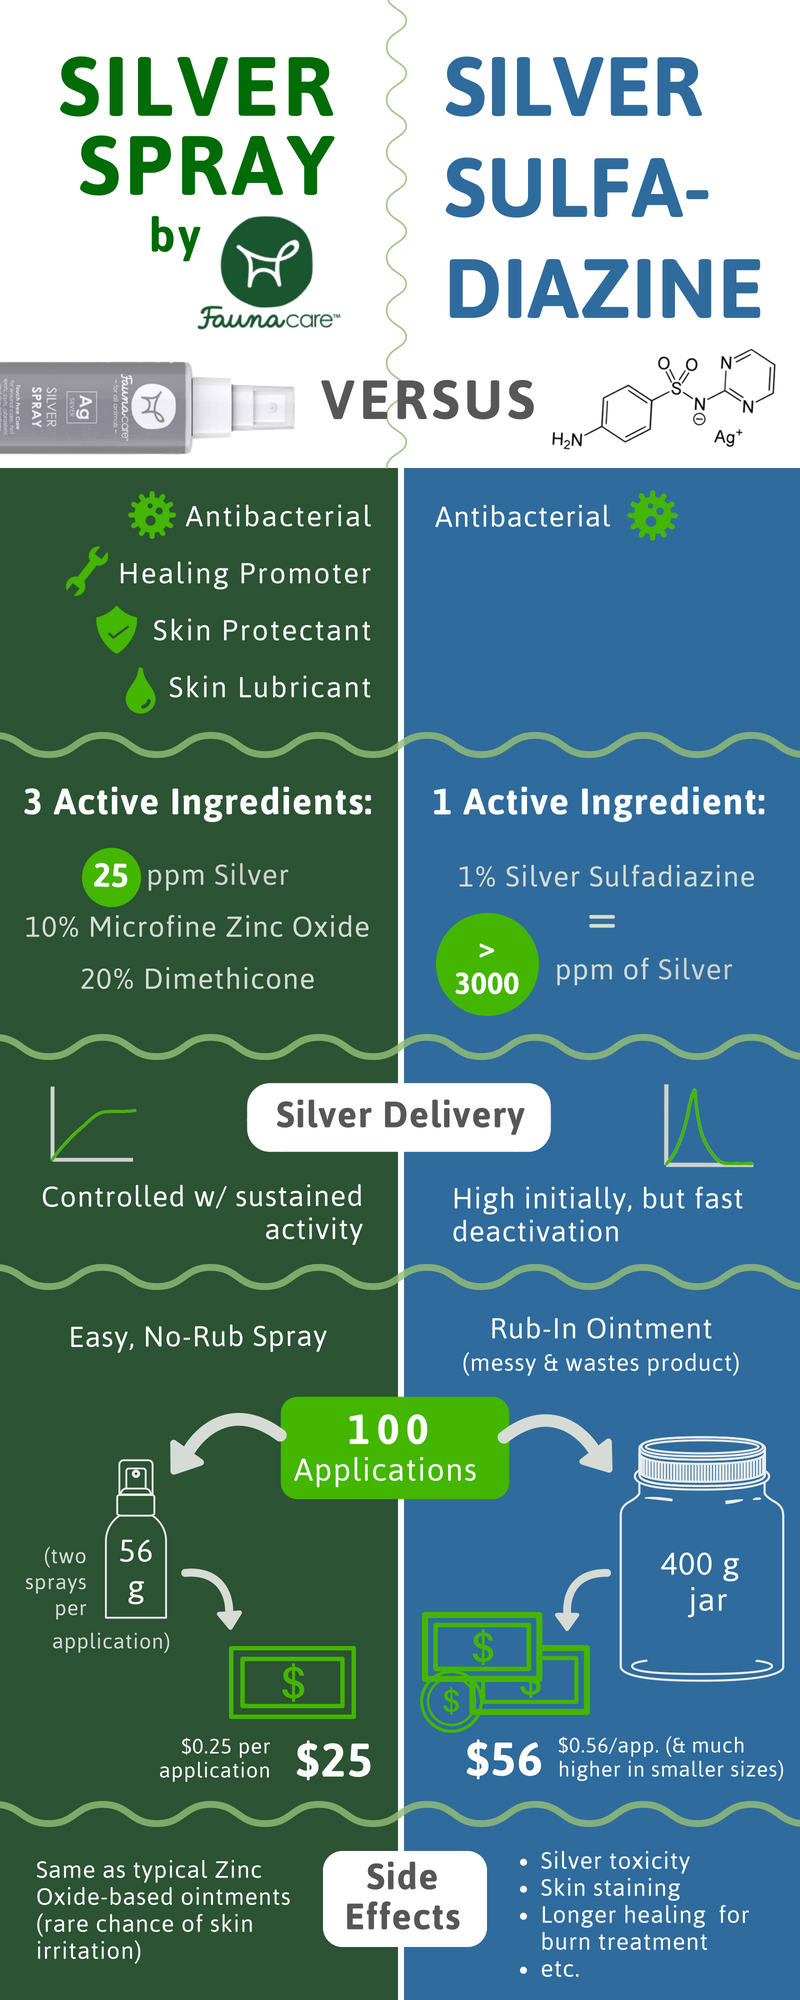 silver spray vs silver sulfadiazine for wound care infographic chart